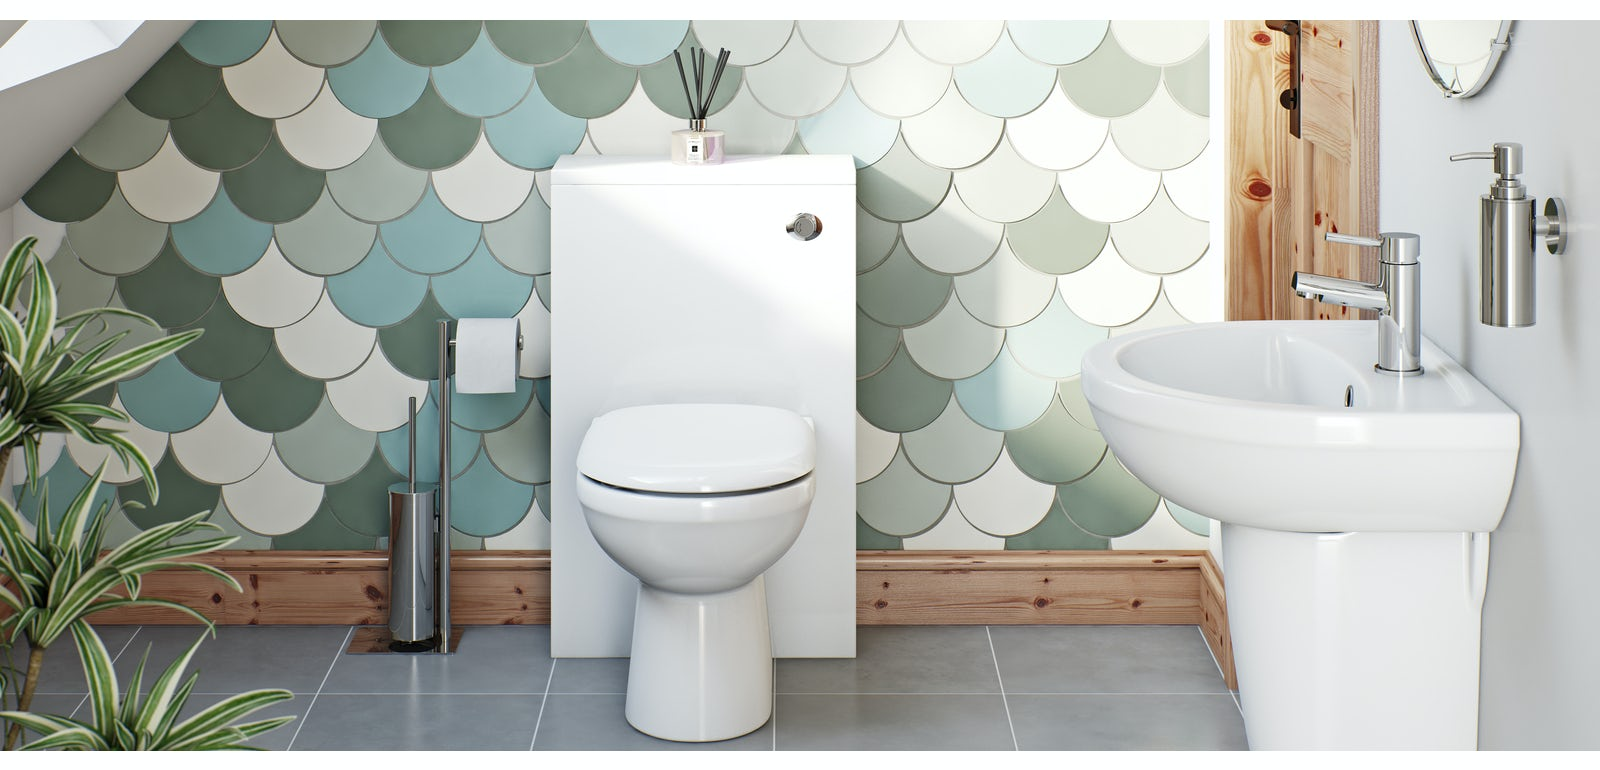 How much to pay to have a bathroom fitted VictoriaPlumcom